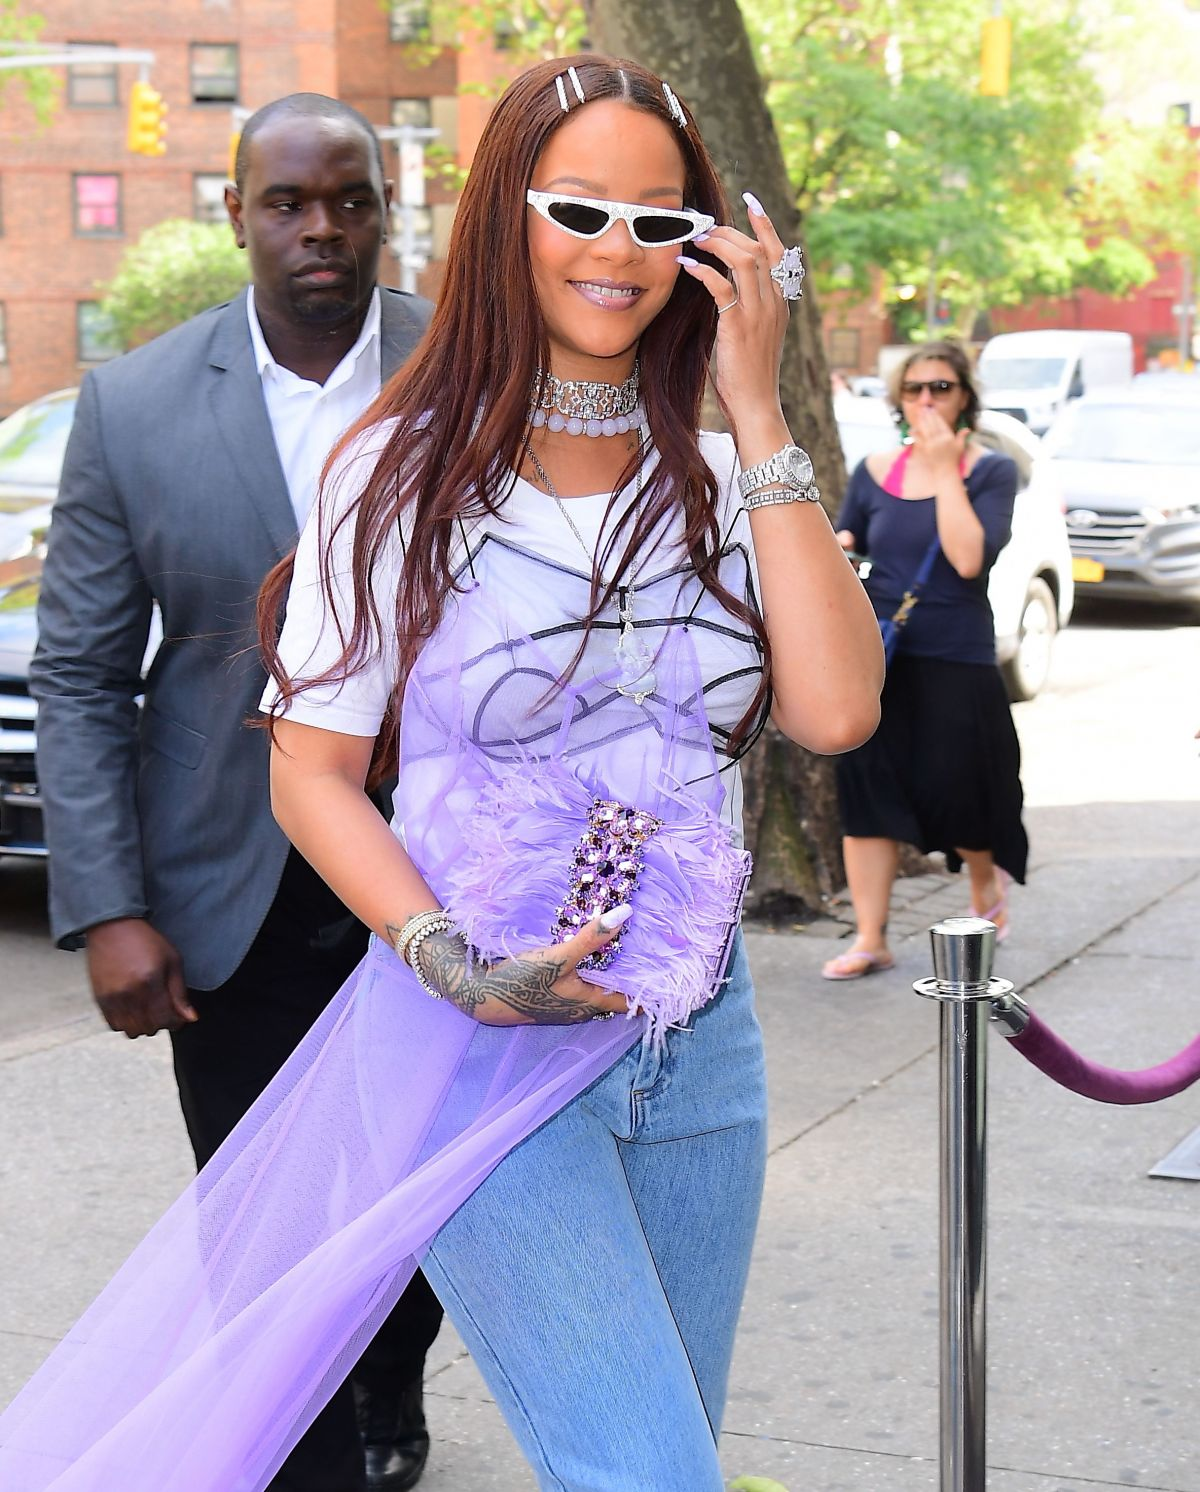 Rihanna out in New York on June 9, 2019